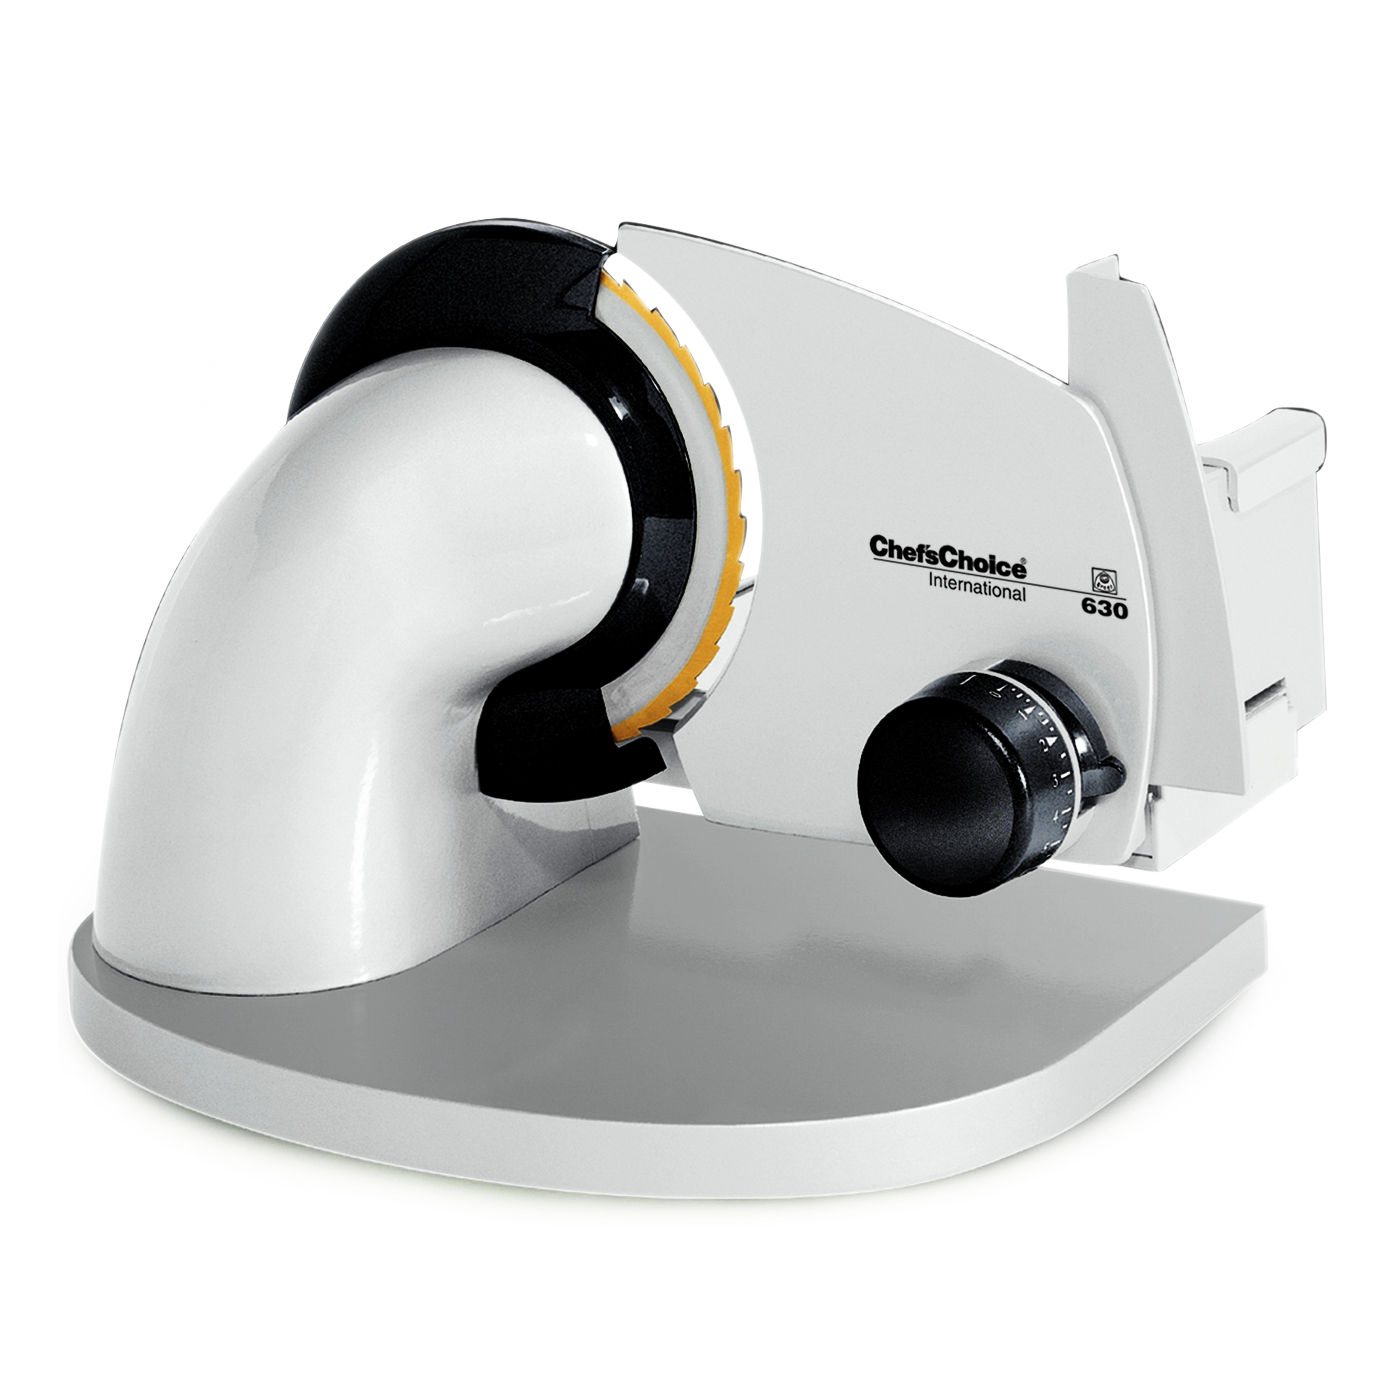 Chef'sChoice White Gourmet Electric Food Slicer Model 630